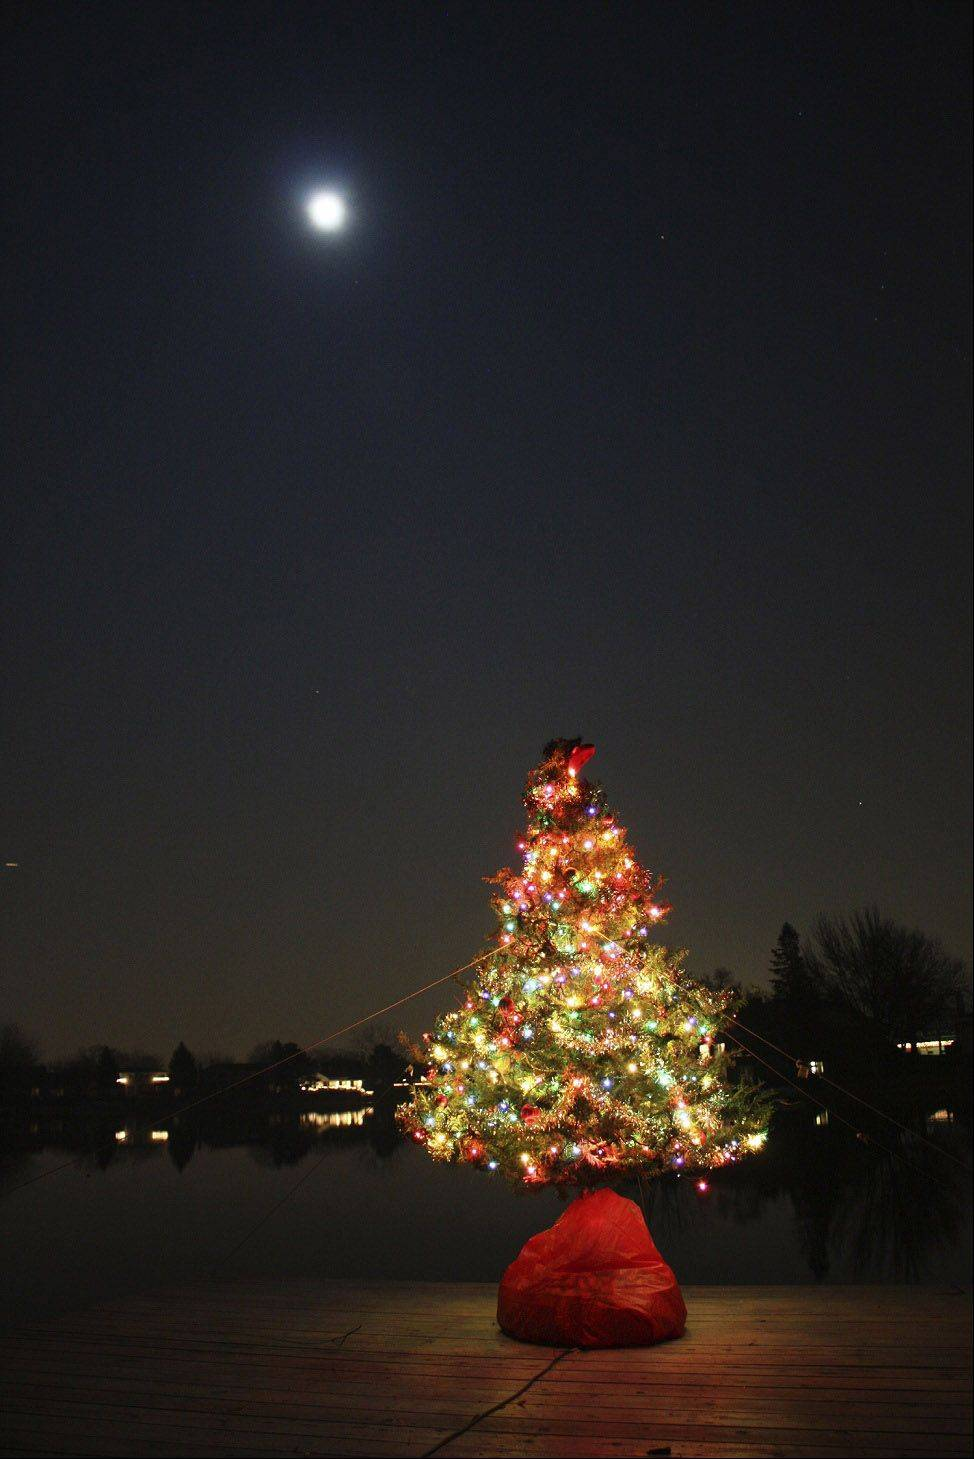 A Christmas tree sits on the edge of a dock on Virginia Lake in Palatine during a full moon.